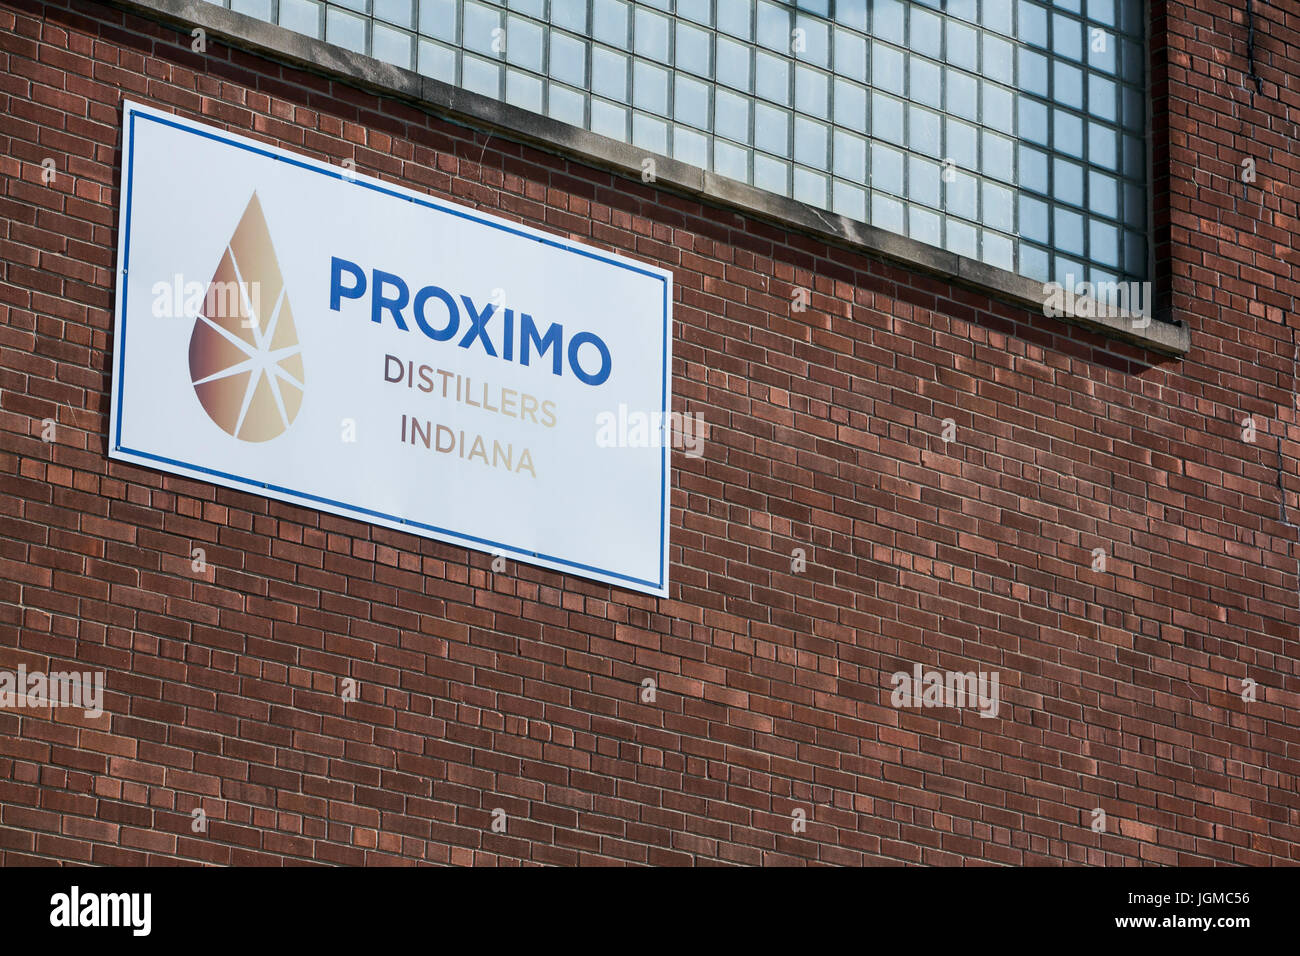 A logo sign outside of a facility occupied by Proximo Spirits, Inc., in Lawrenceburg, Indiana on July 2, 2017. - Stock Image